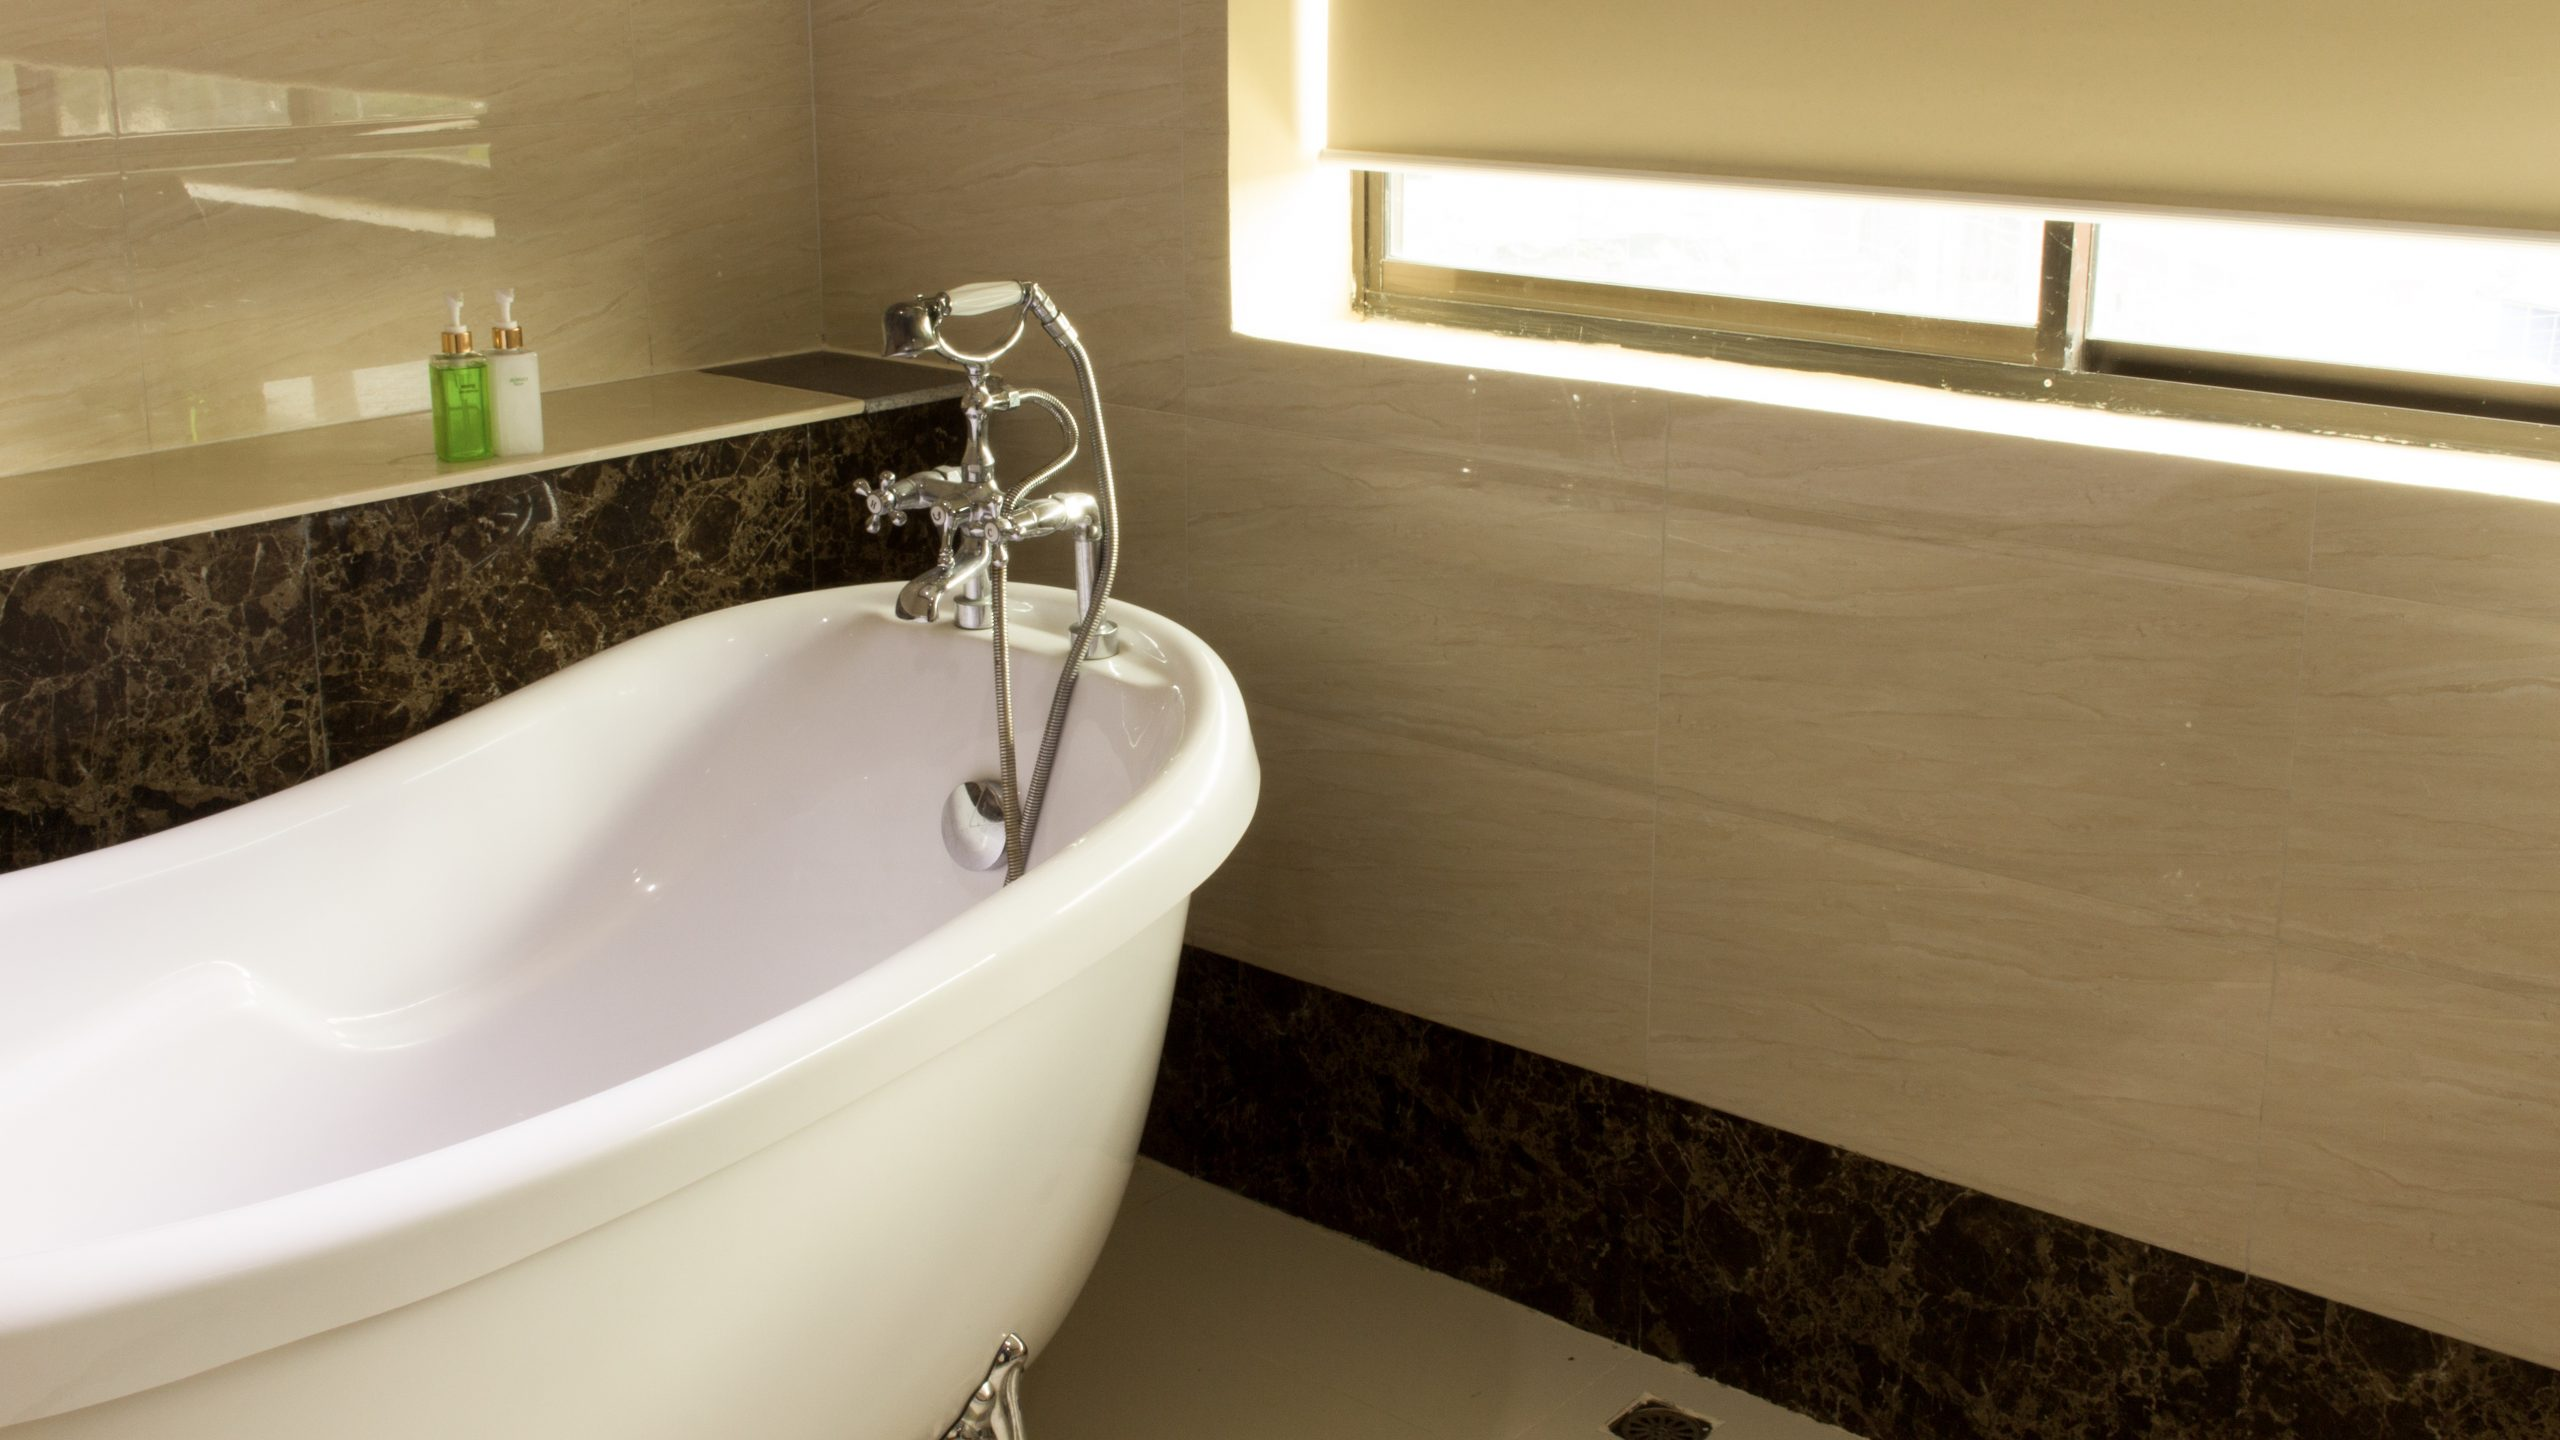 5 Benefits of an Acrylic Bathroom System